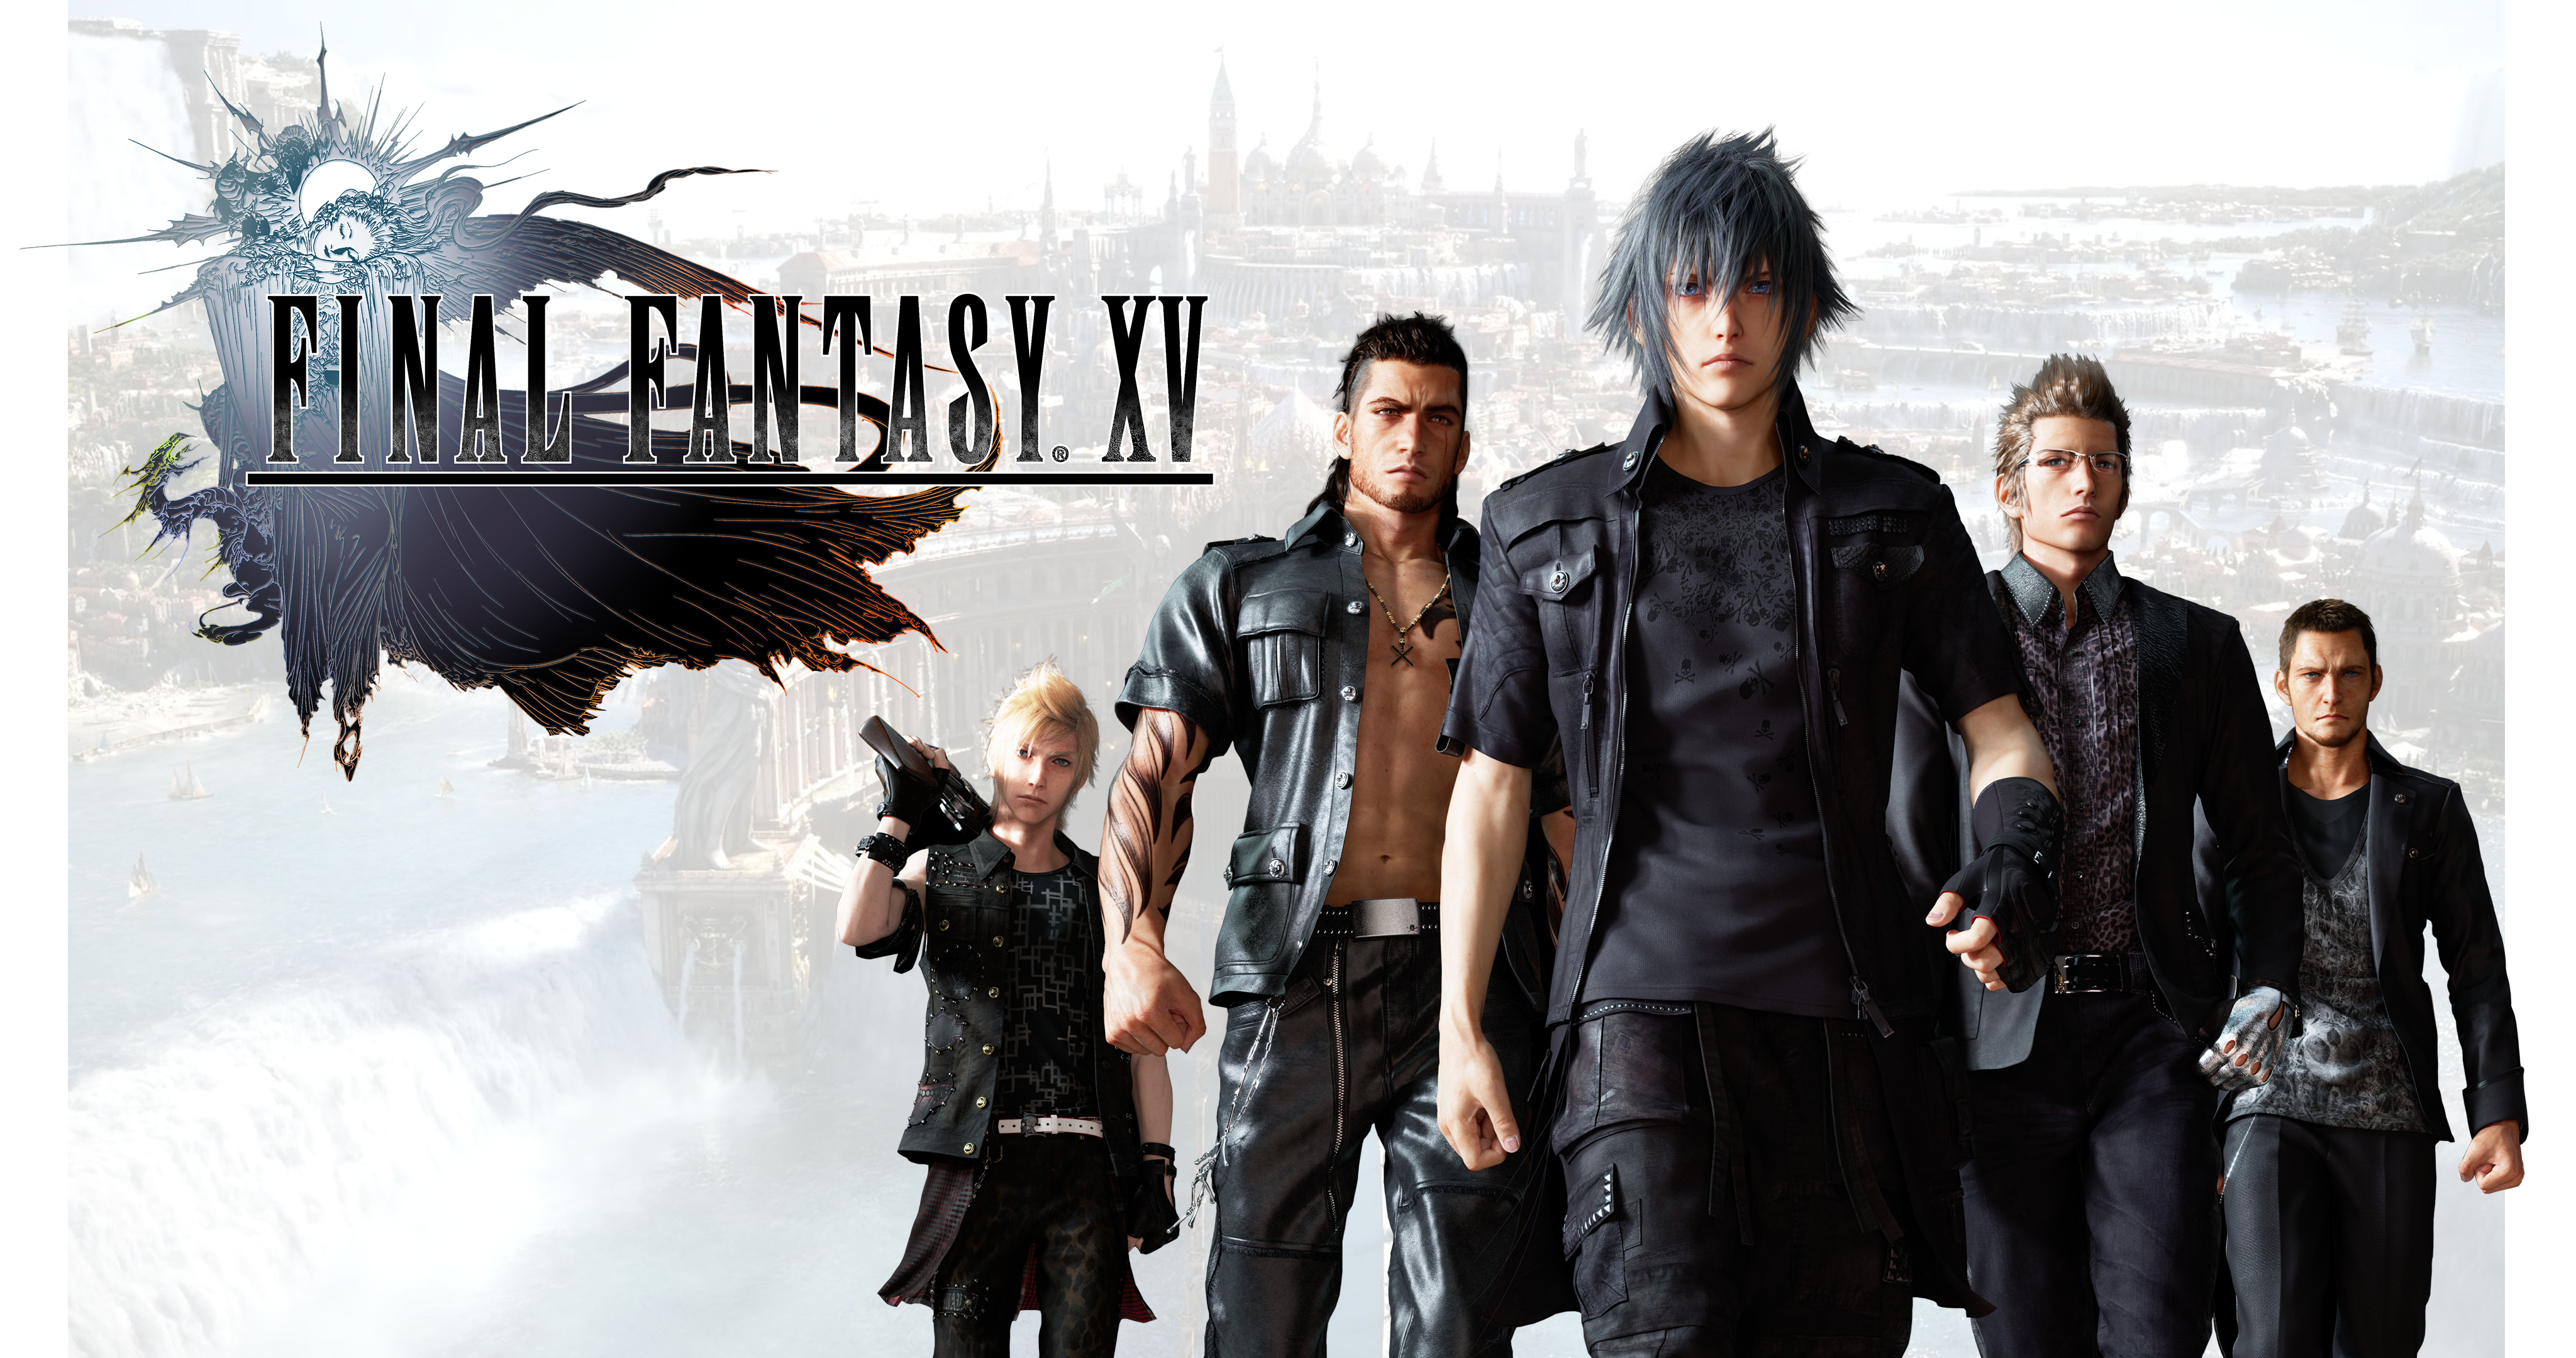 Final Fantasy Xv Wallpaper 4k With New Prompto By Realzeles On Deviantart